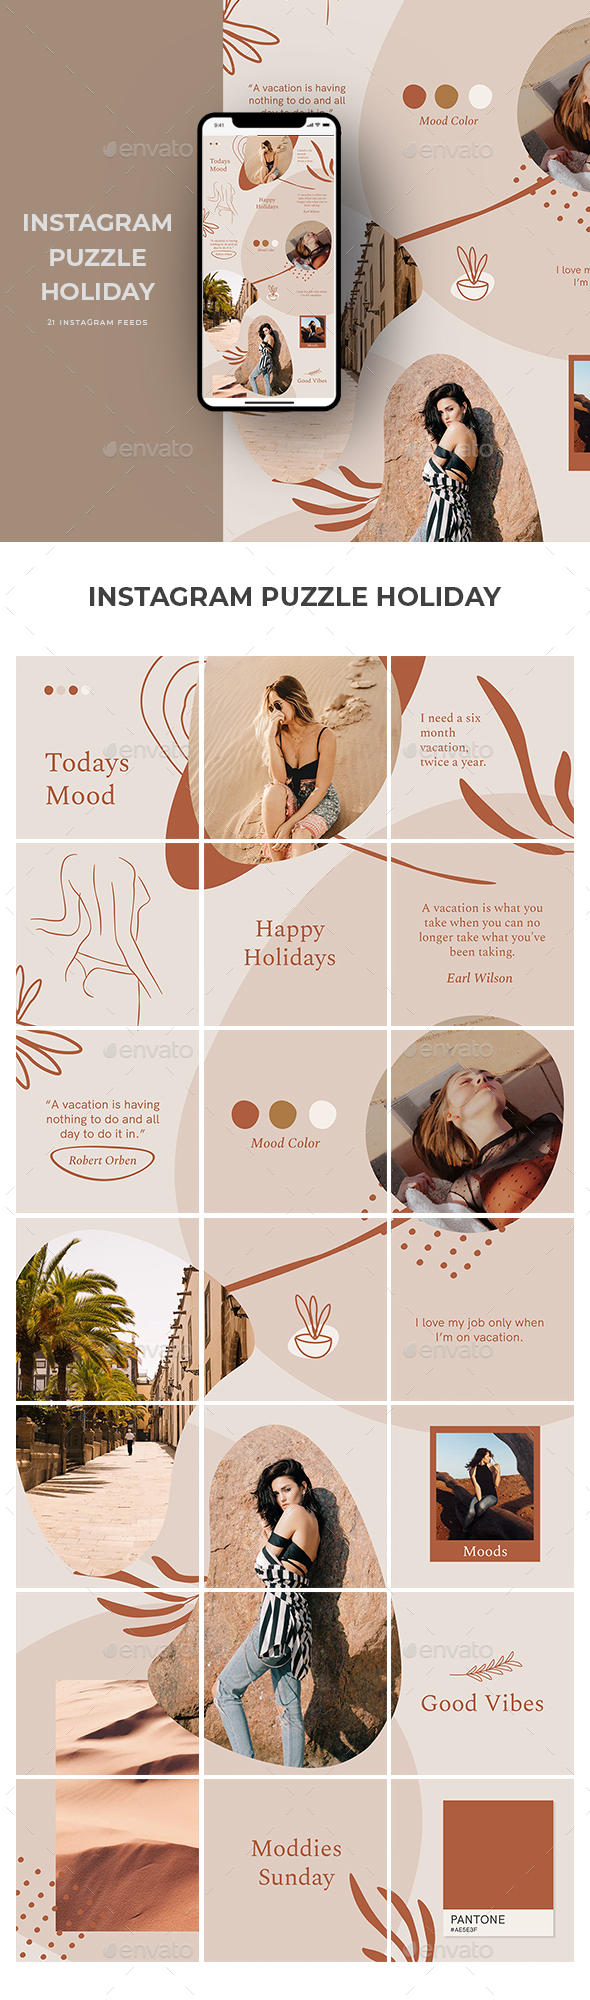 Instagram Puzzle Holiday Templates